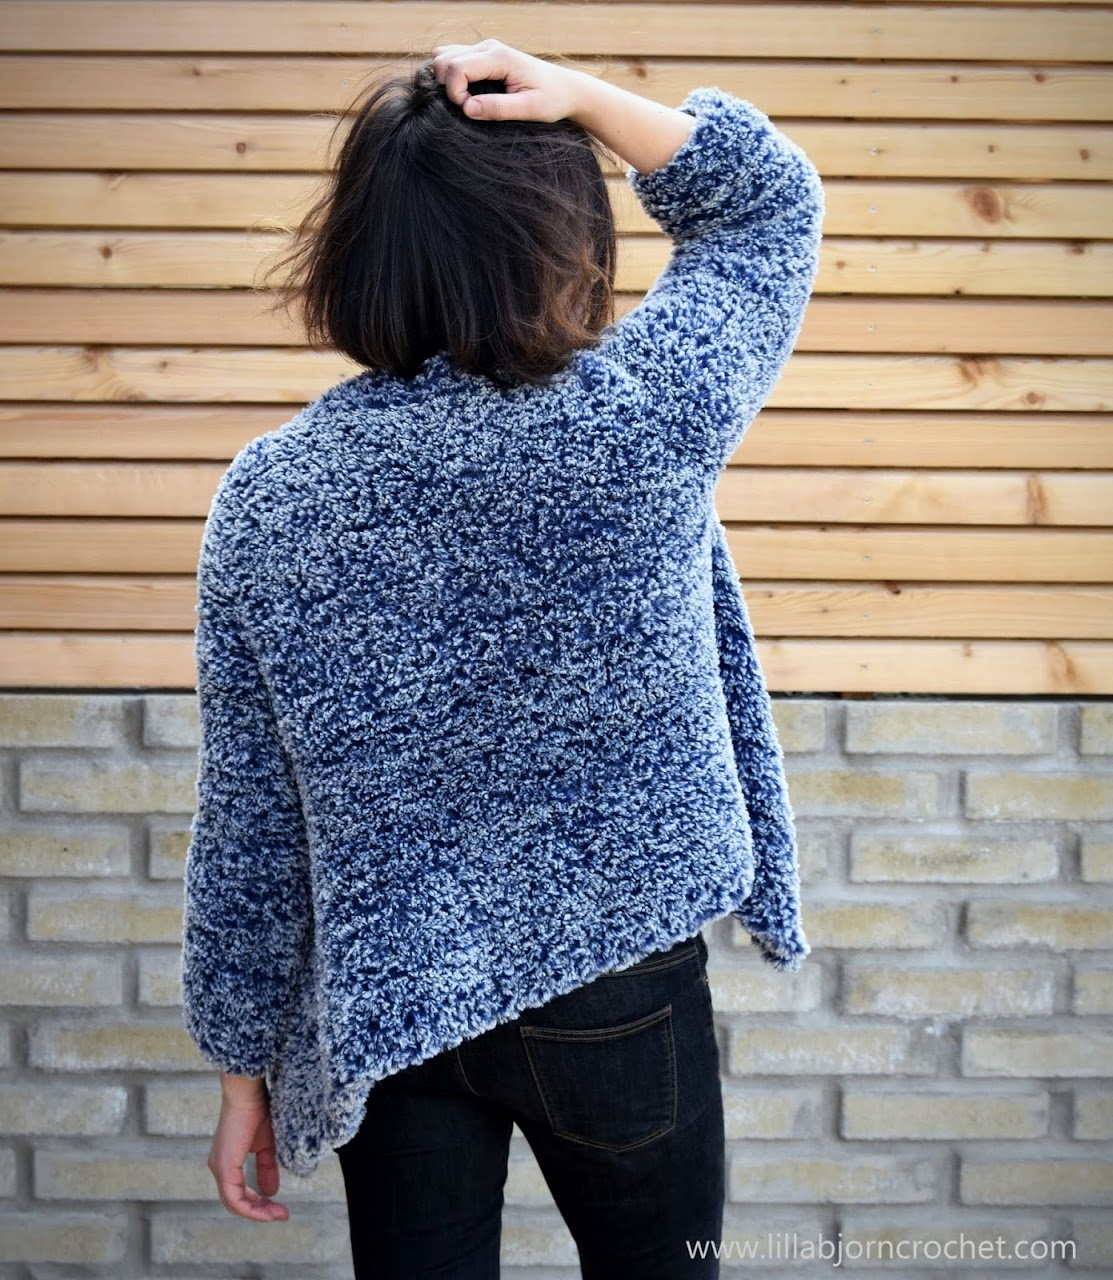 Oversized garment knitted with Scheepjes Furry Tales yarn